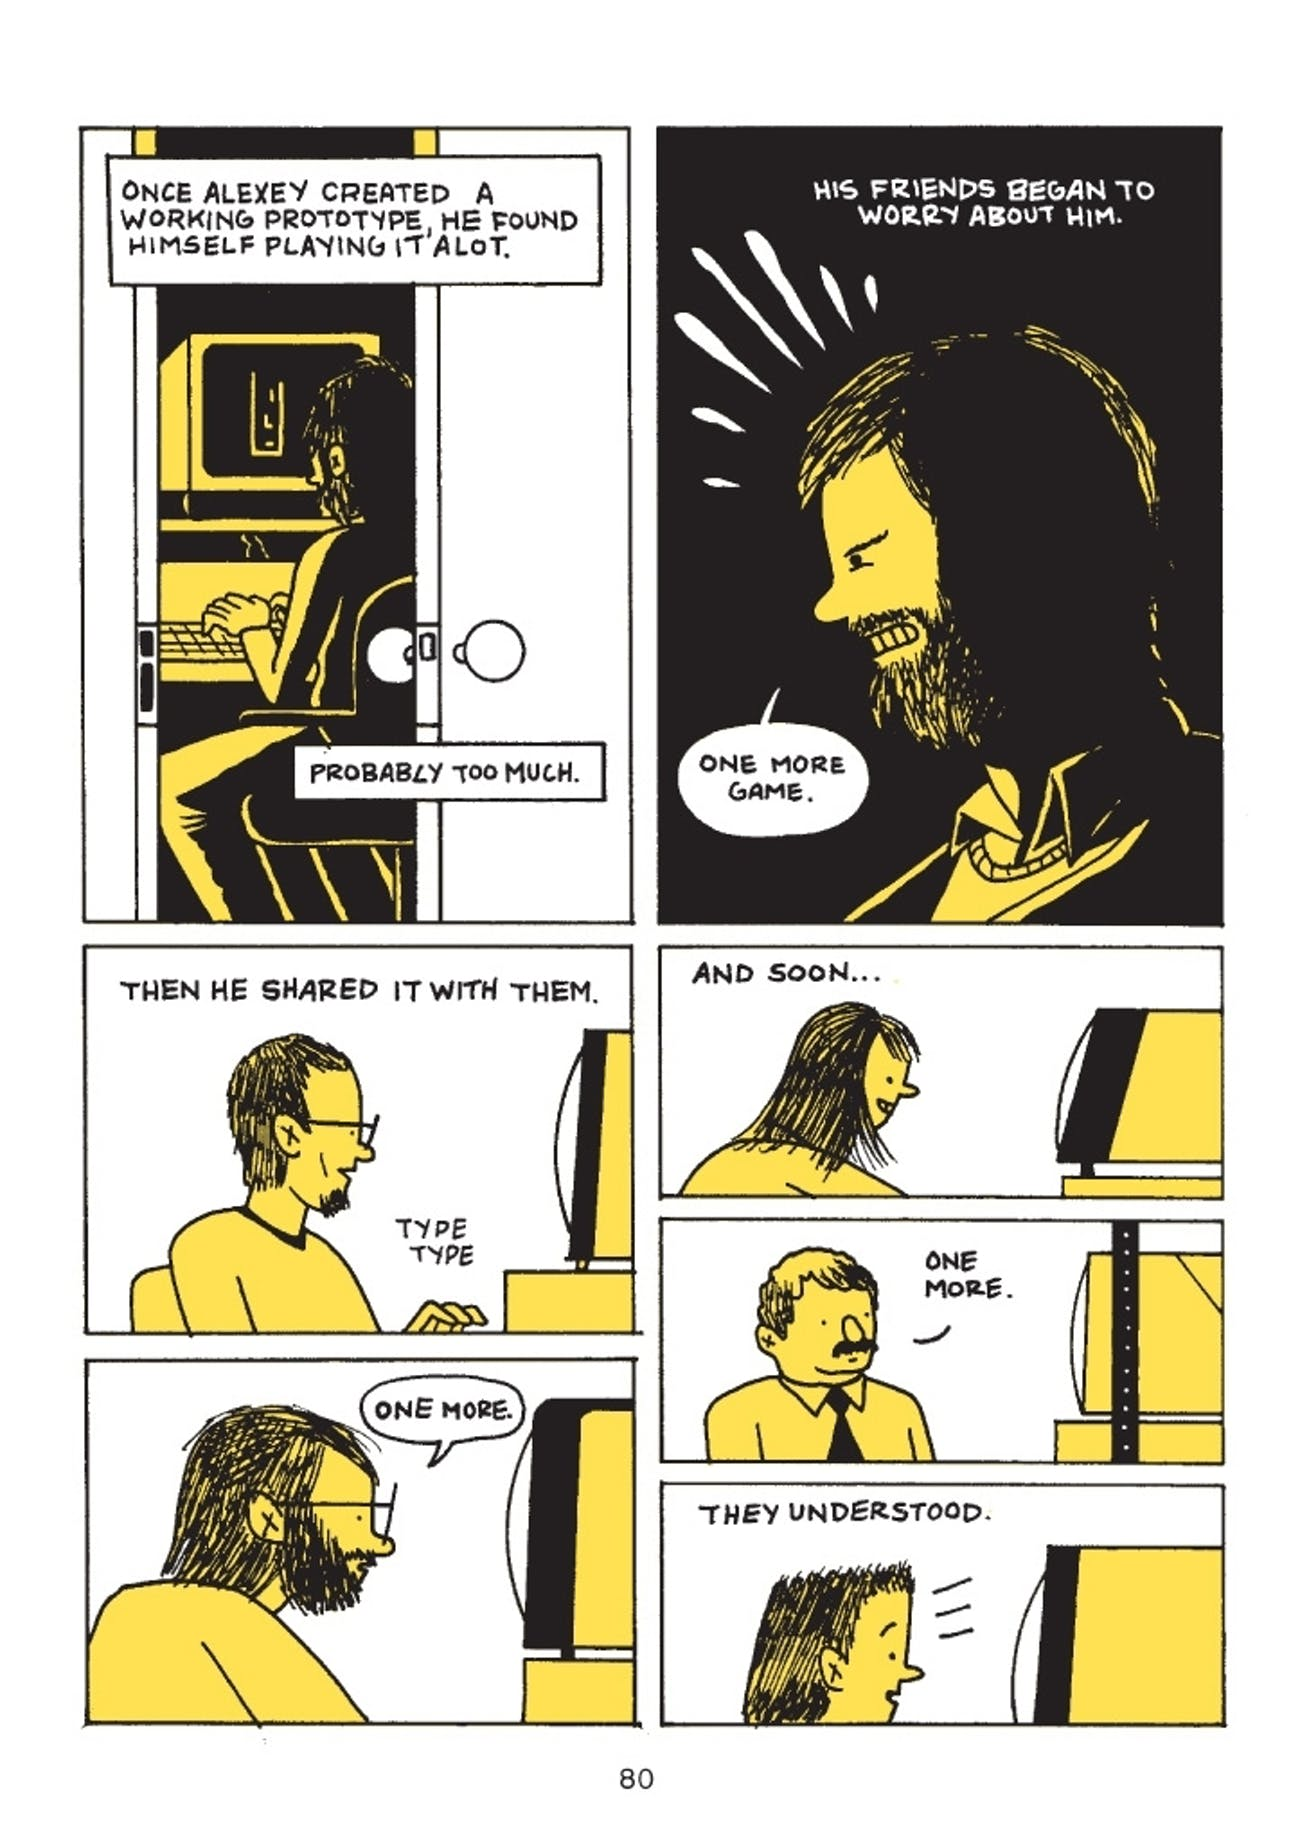 How Box Brown Made a Graphic Novel About 'Tetris' | Inverse